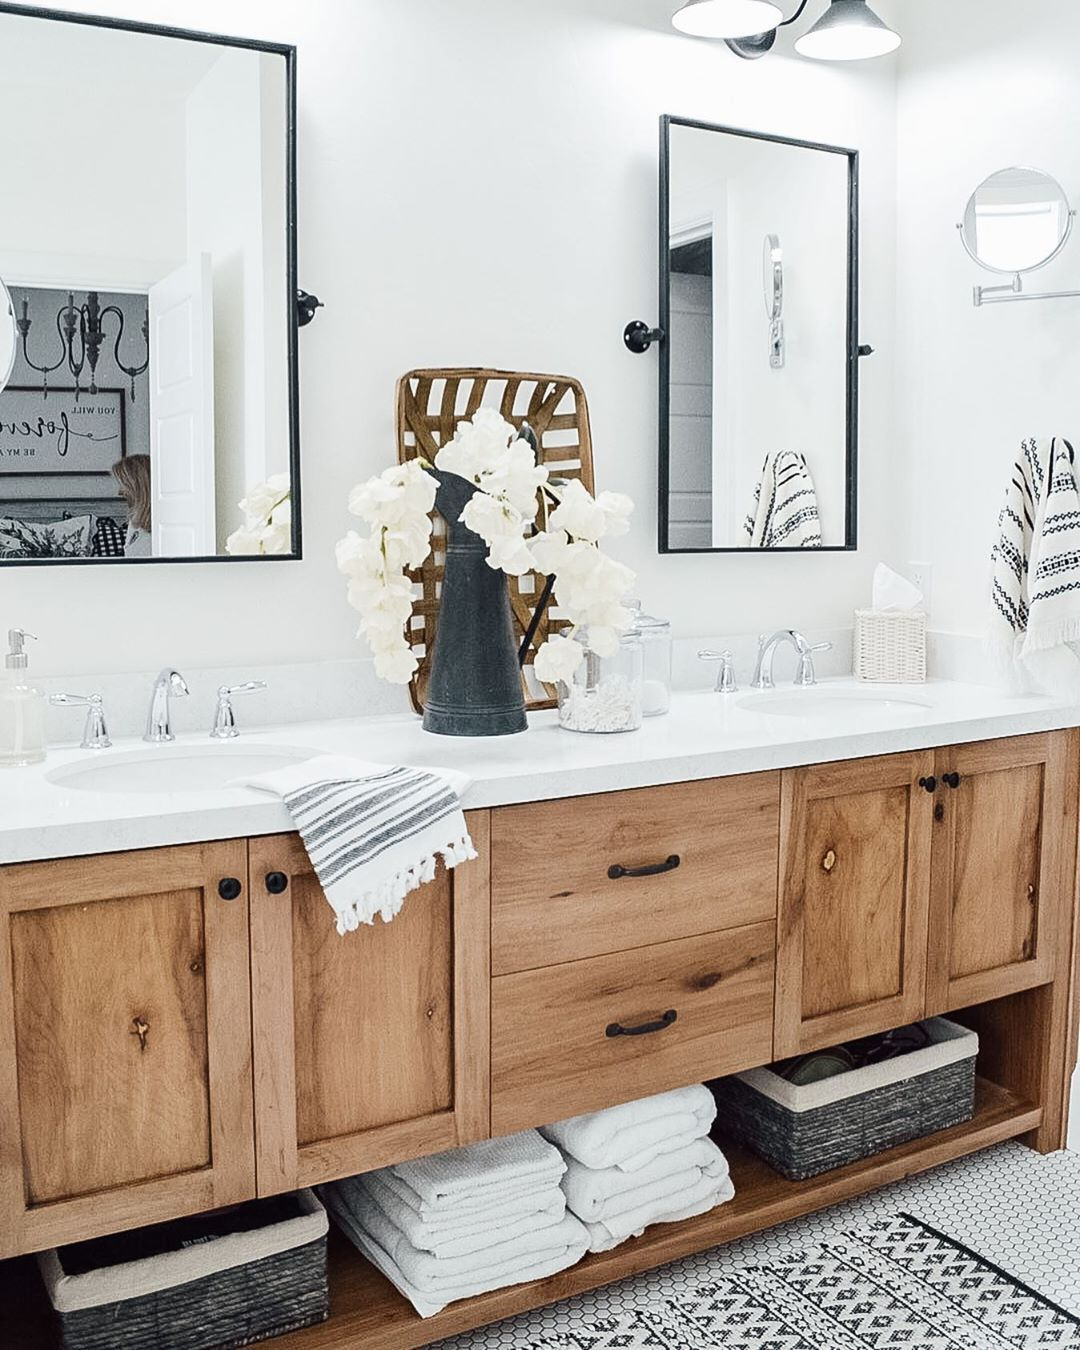 Tennille On Instagram Don T Look To Closely Someone Snuck Into My Photo Photobo Bathroom Remodel Master Master Bathroom Decor Master Bathroom Design